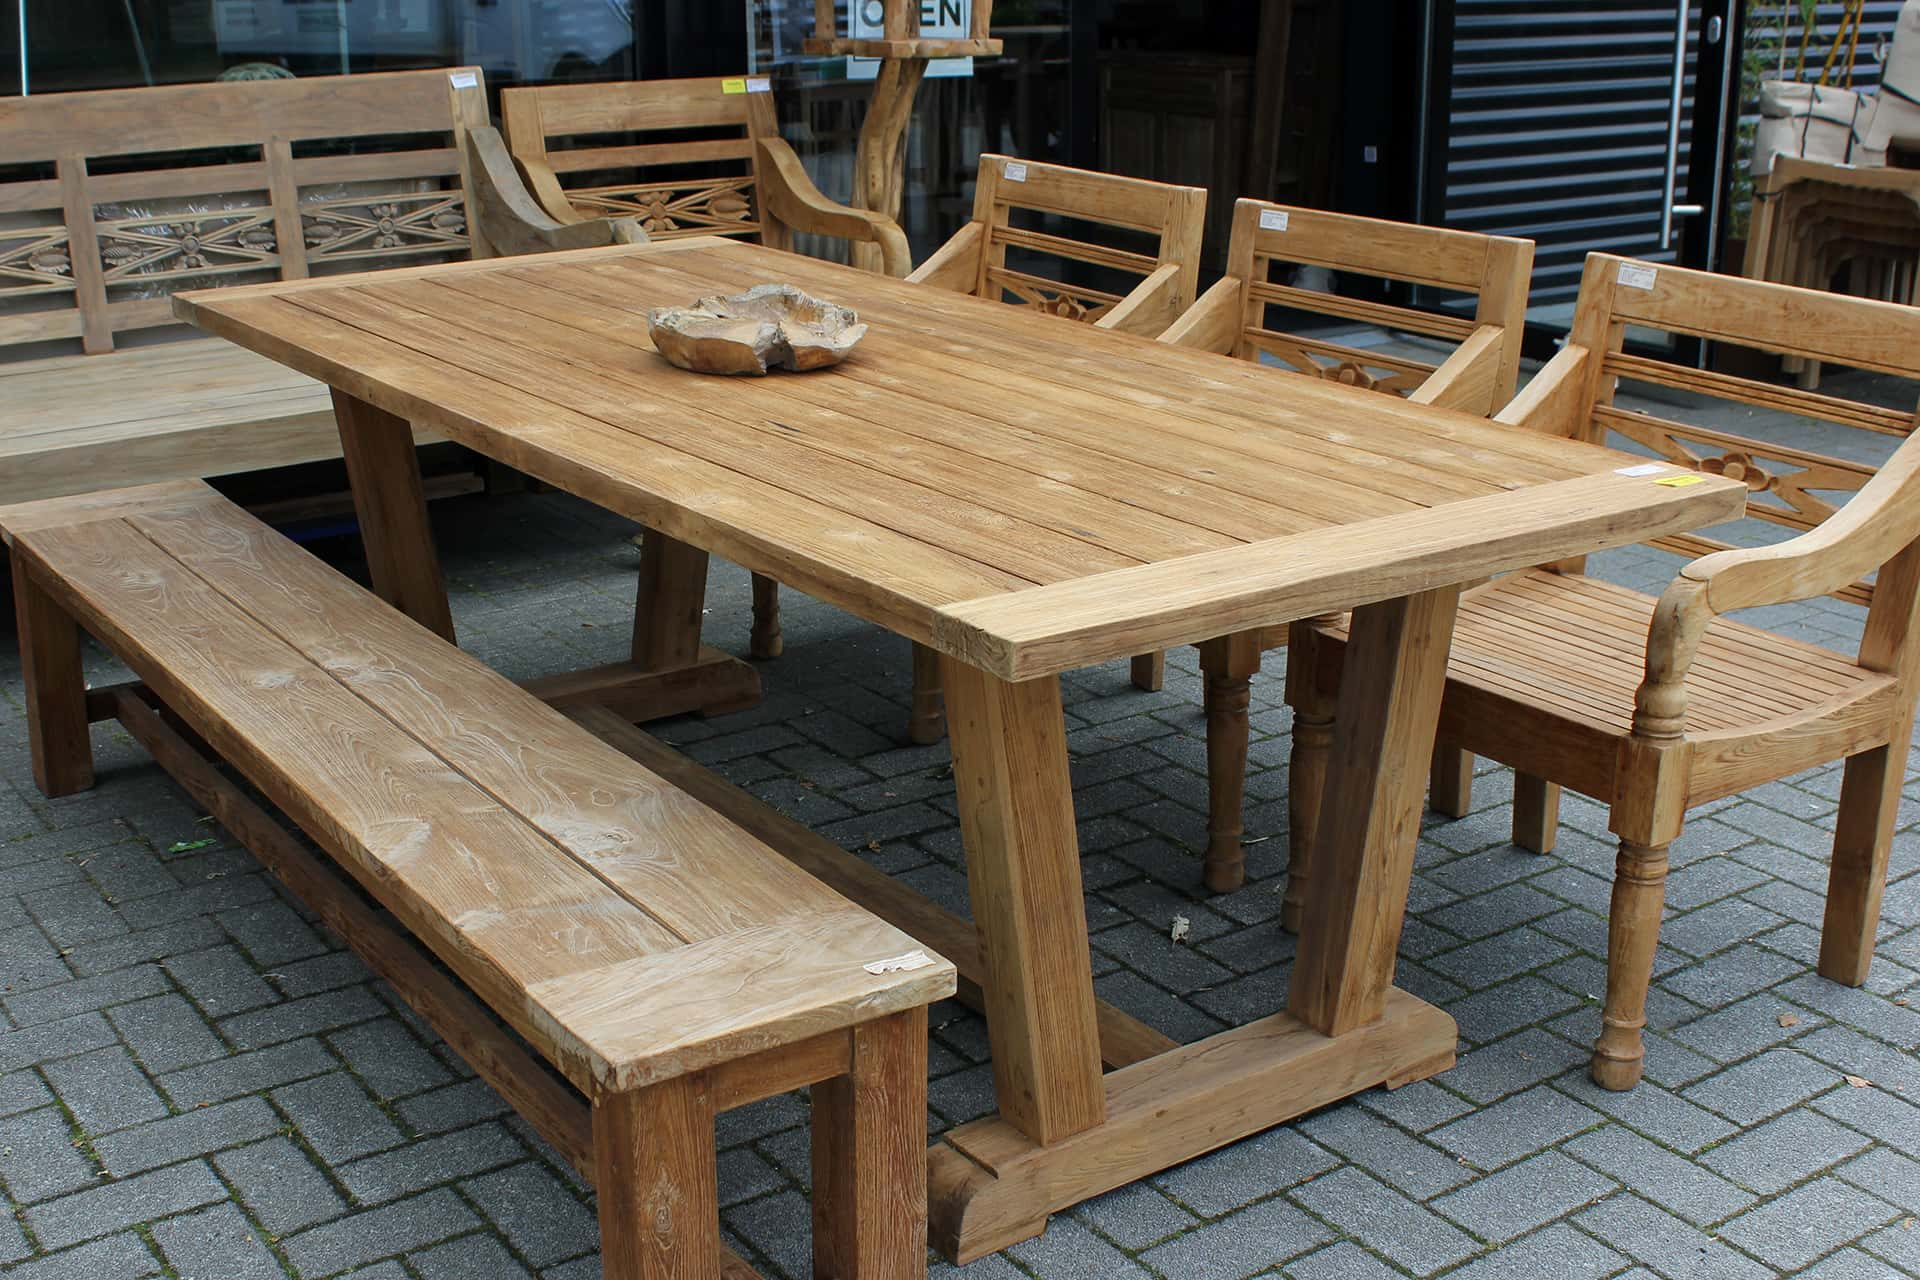 Teak Tangguh O220KV Old | wooden garden table with robust legs in V-profile. Teak garden table with a rural look and solid base - TEAK2.